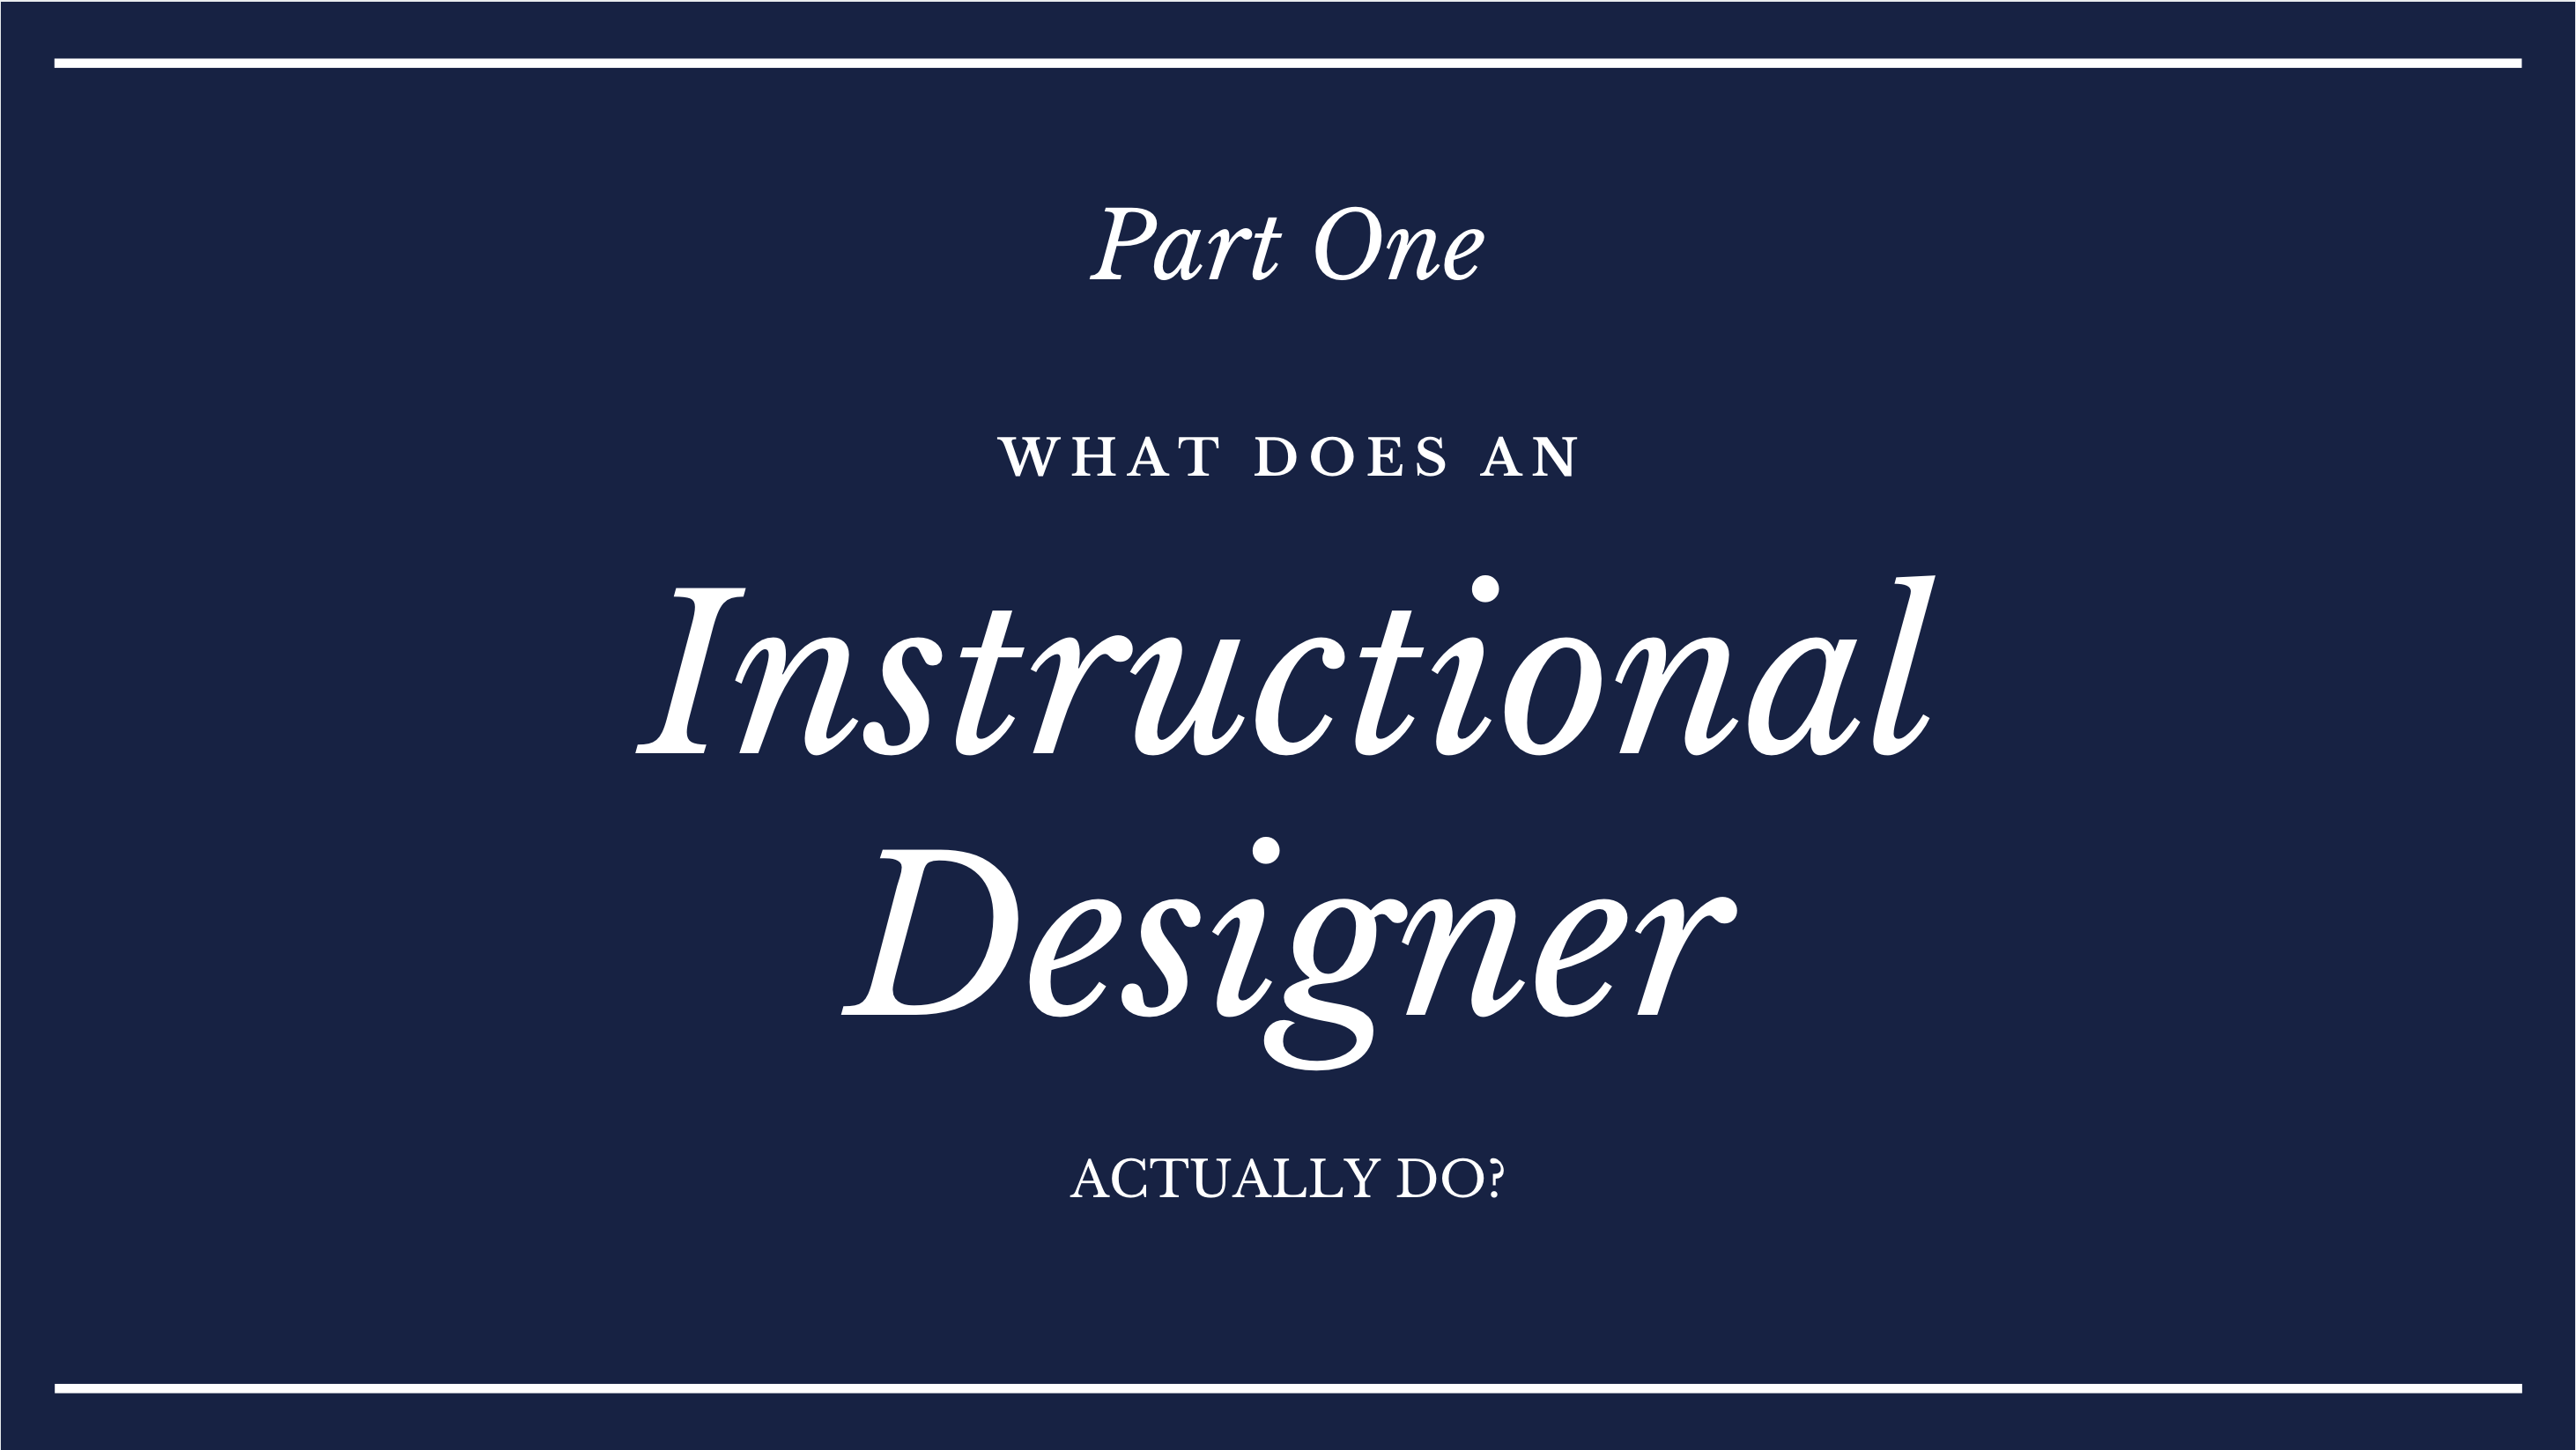 Part One What does an instructional designer actually do?